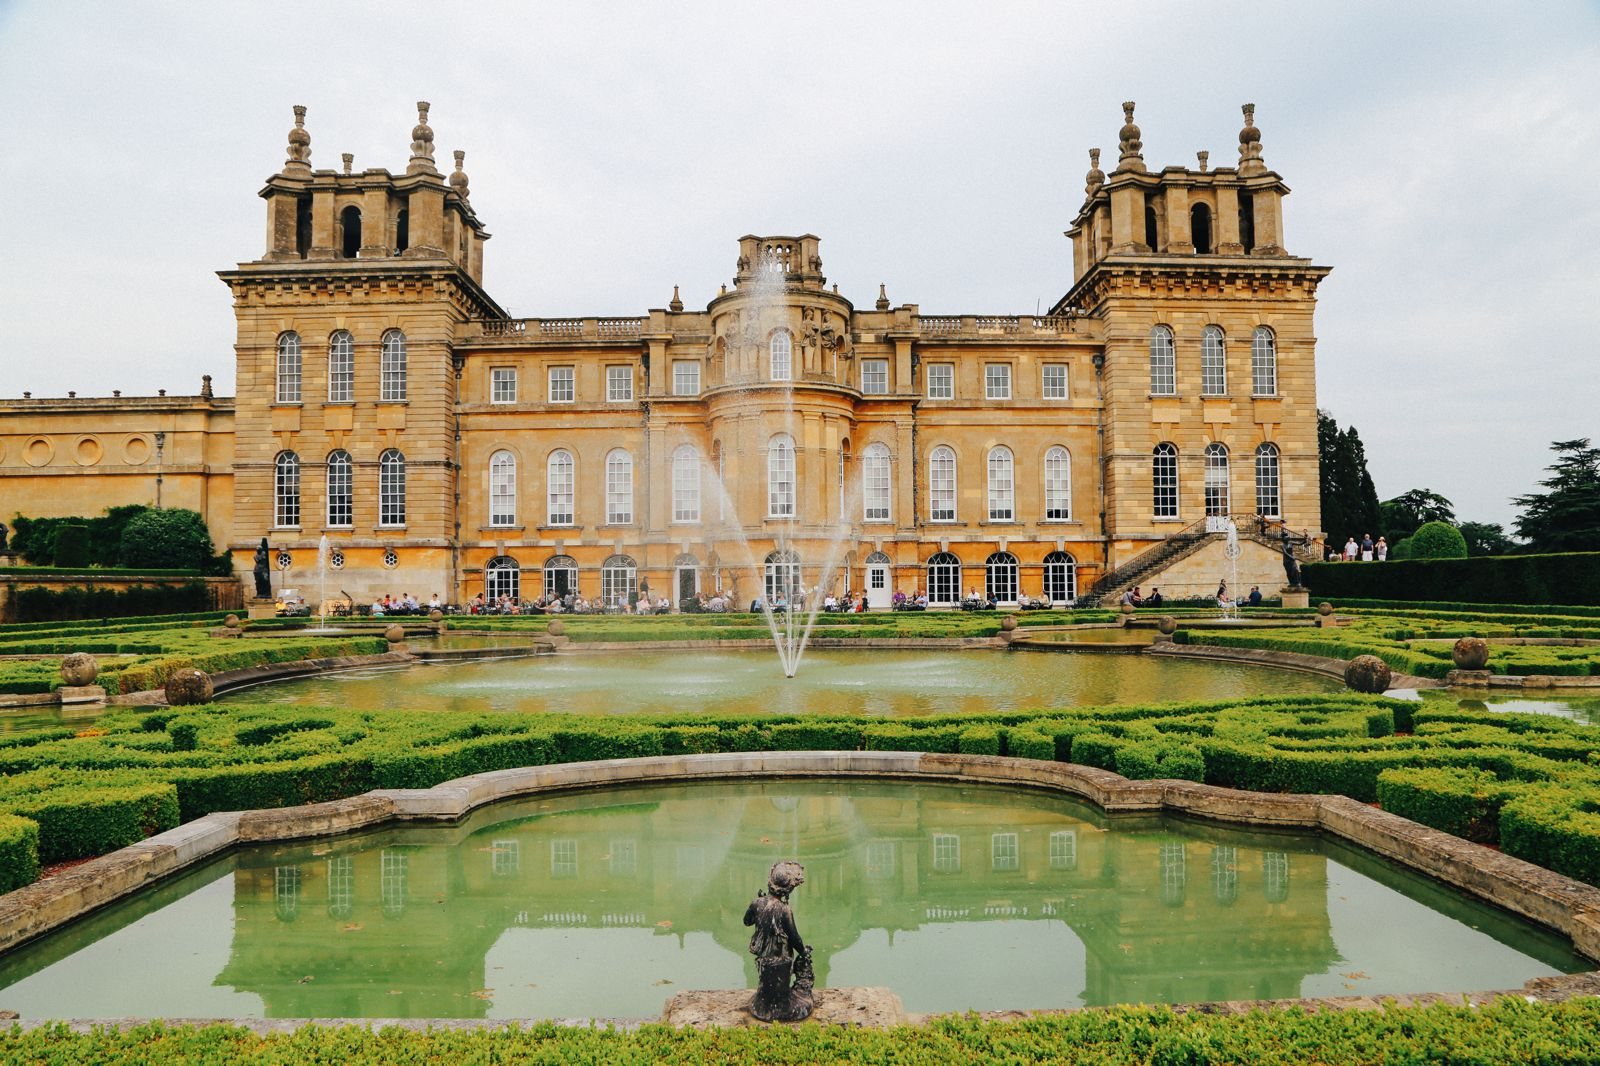 BlenheimPalace